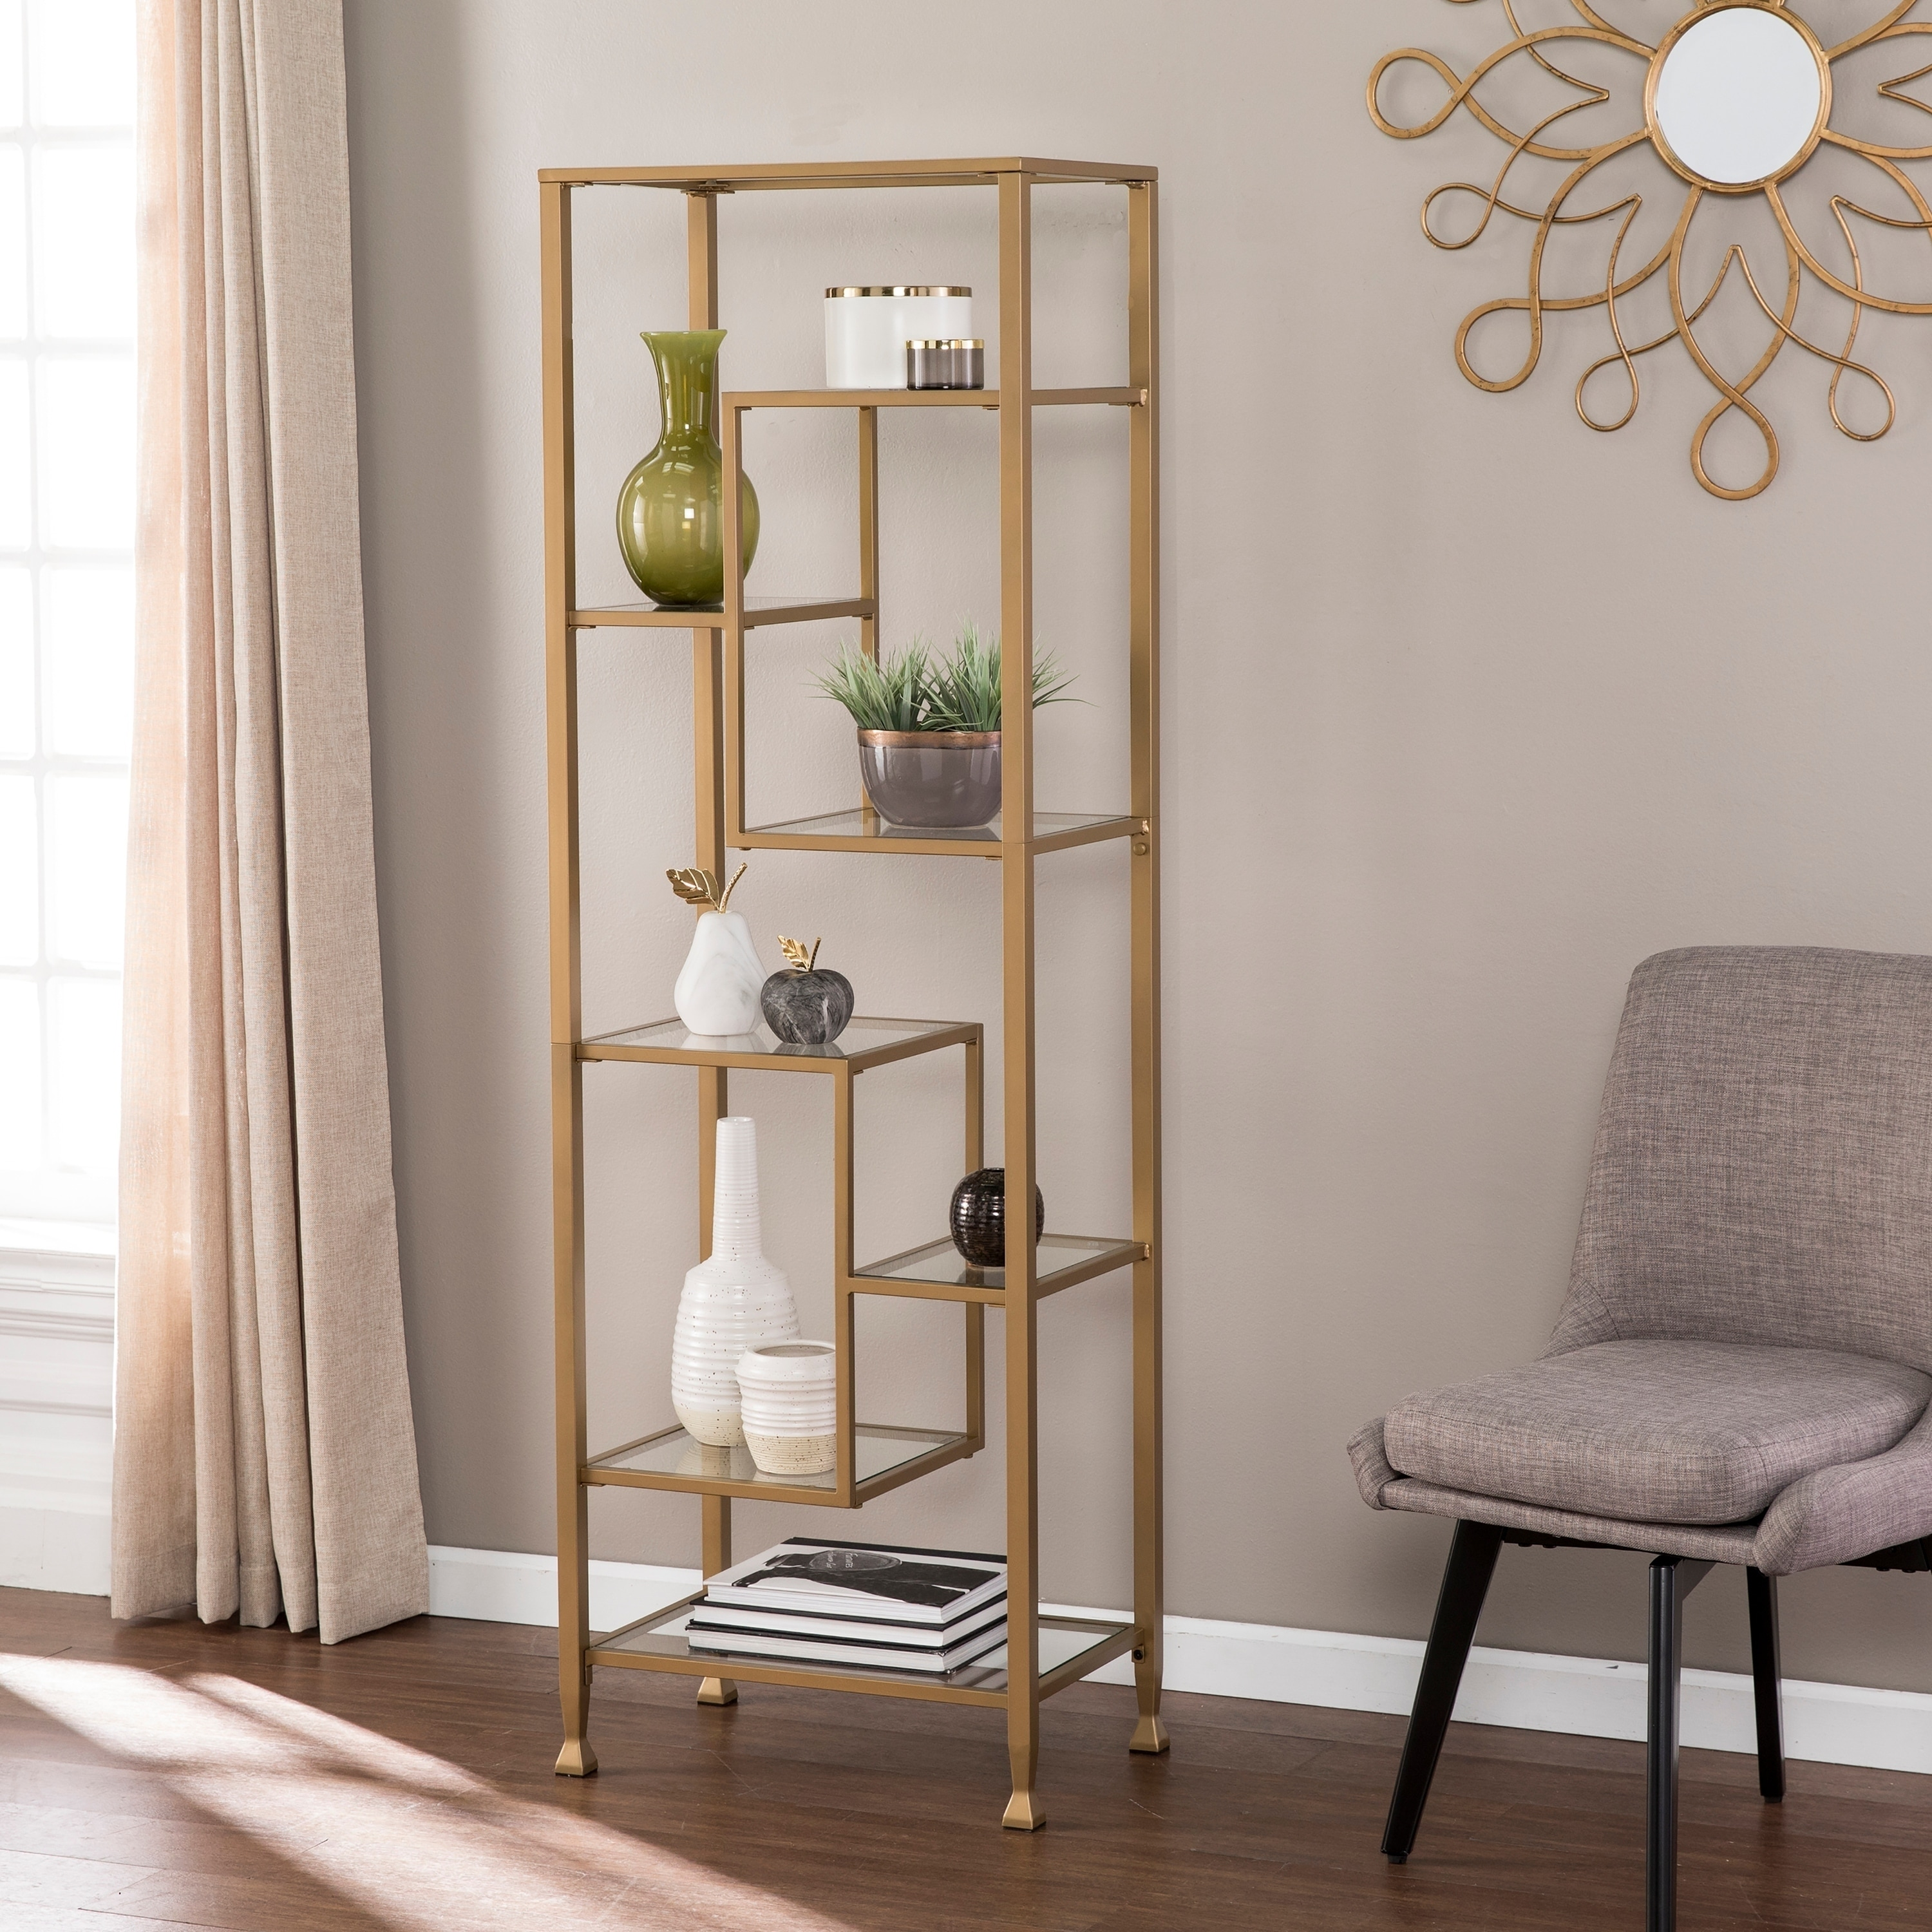 Buy Glass Bookshelves Bookcases Online At Overstock Our